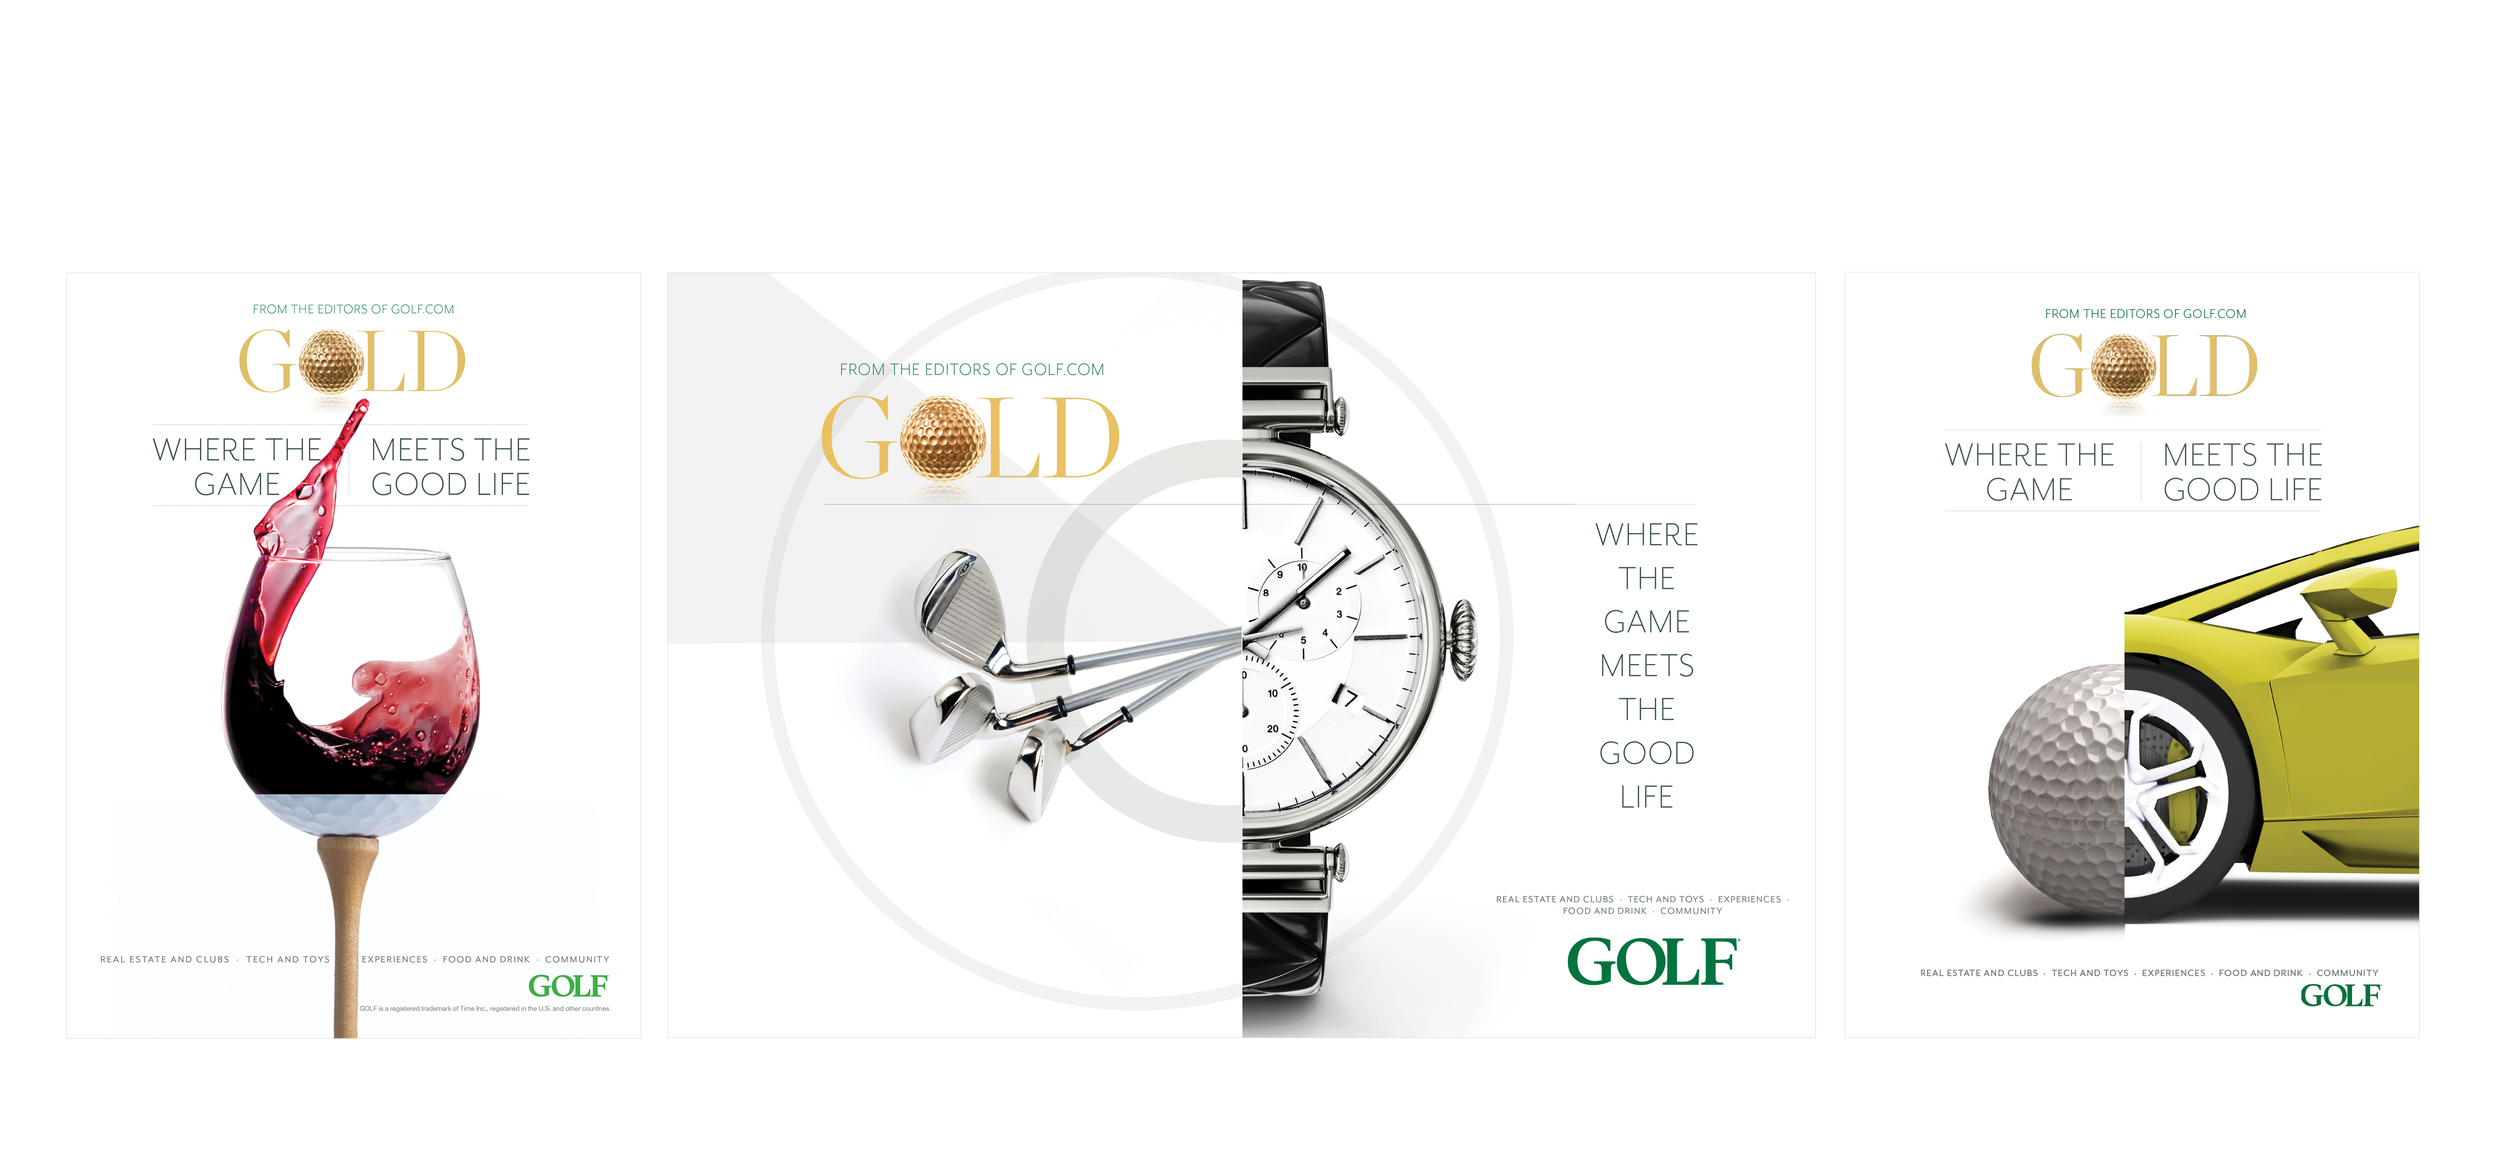 Golf Gold branding campaign